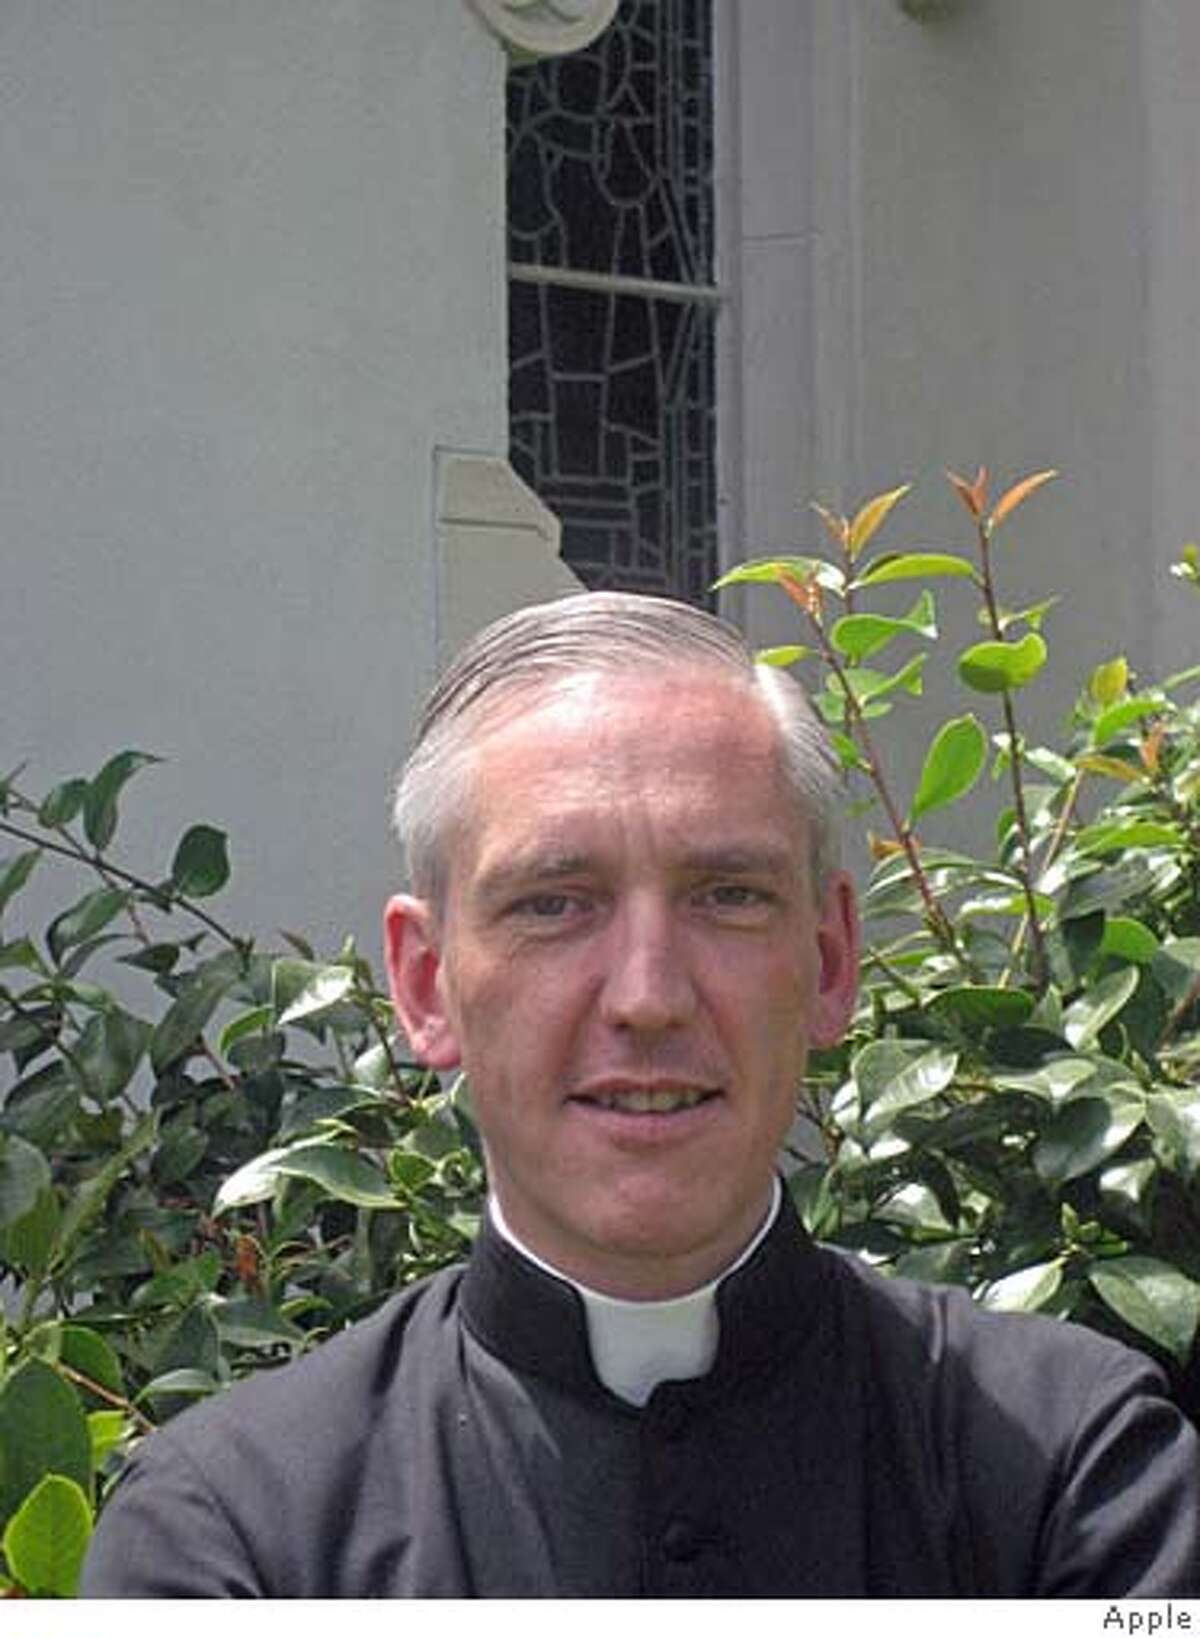 Father Michael Wiener. Photo by Apple